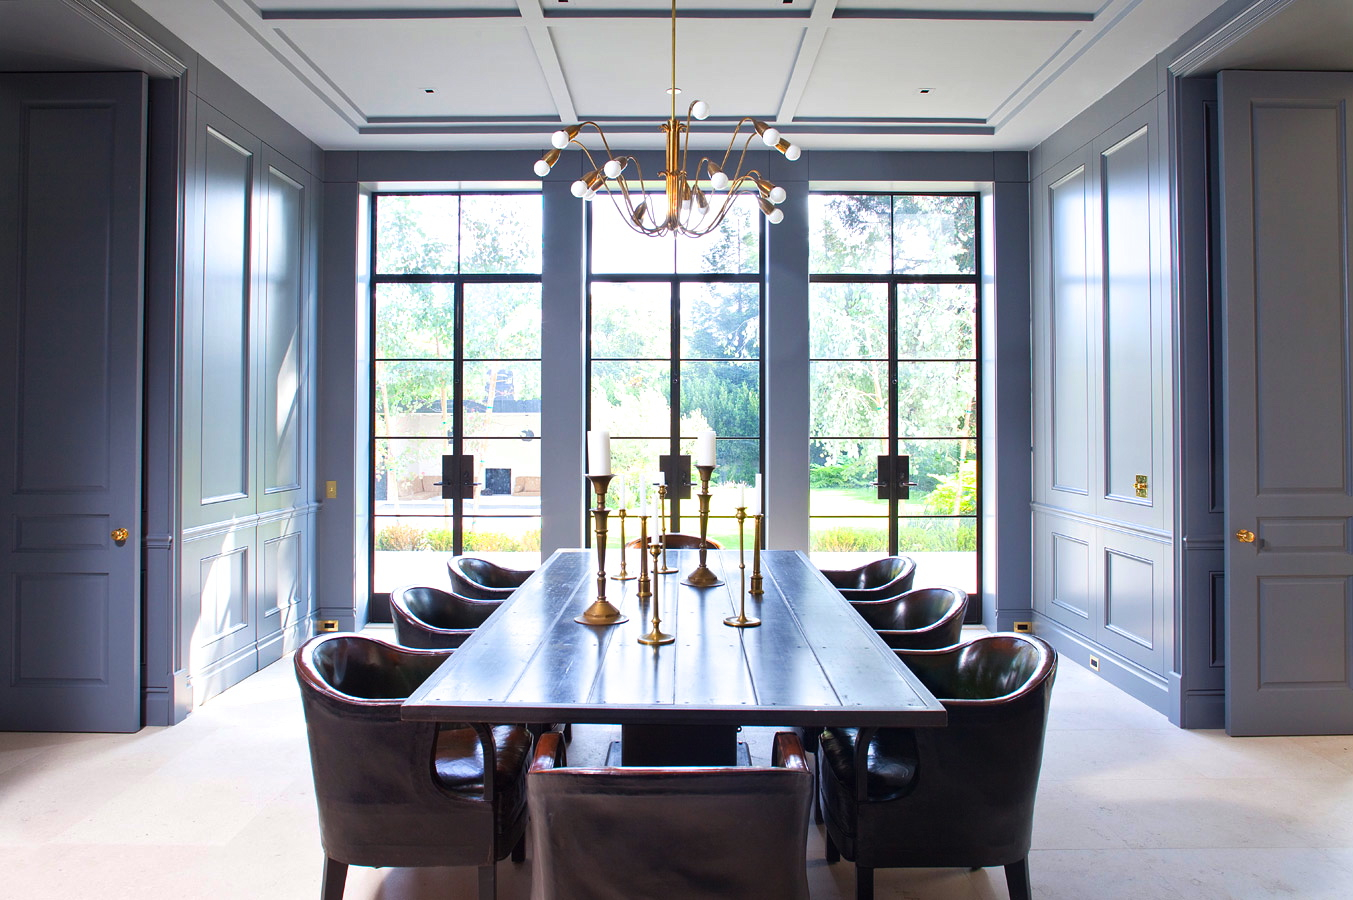 Superbe Collect This Idea William Hefner Dining Room Paneled Walls Doors Gray Blue  Cococozy Interior Design Leather Chairs Encasement Windows